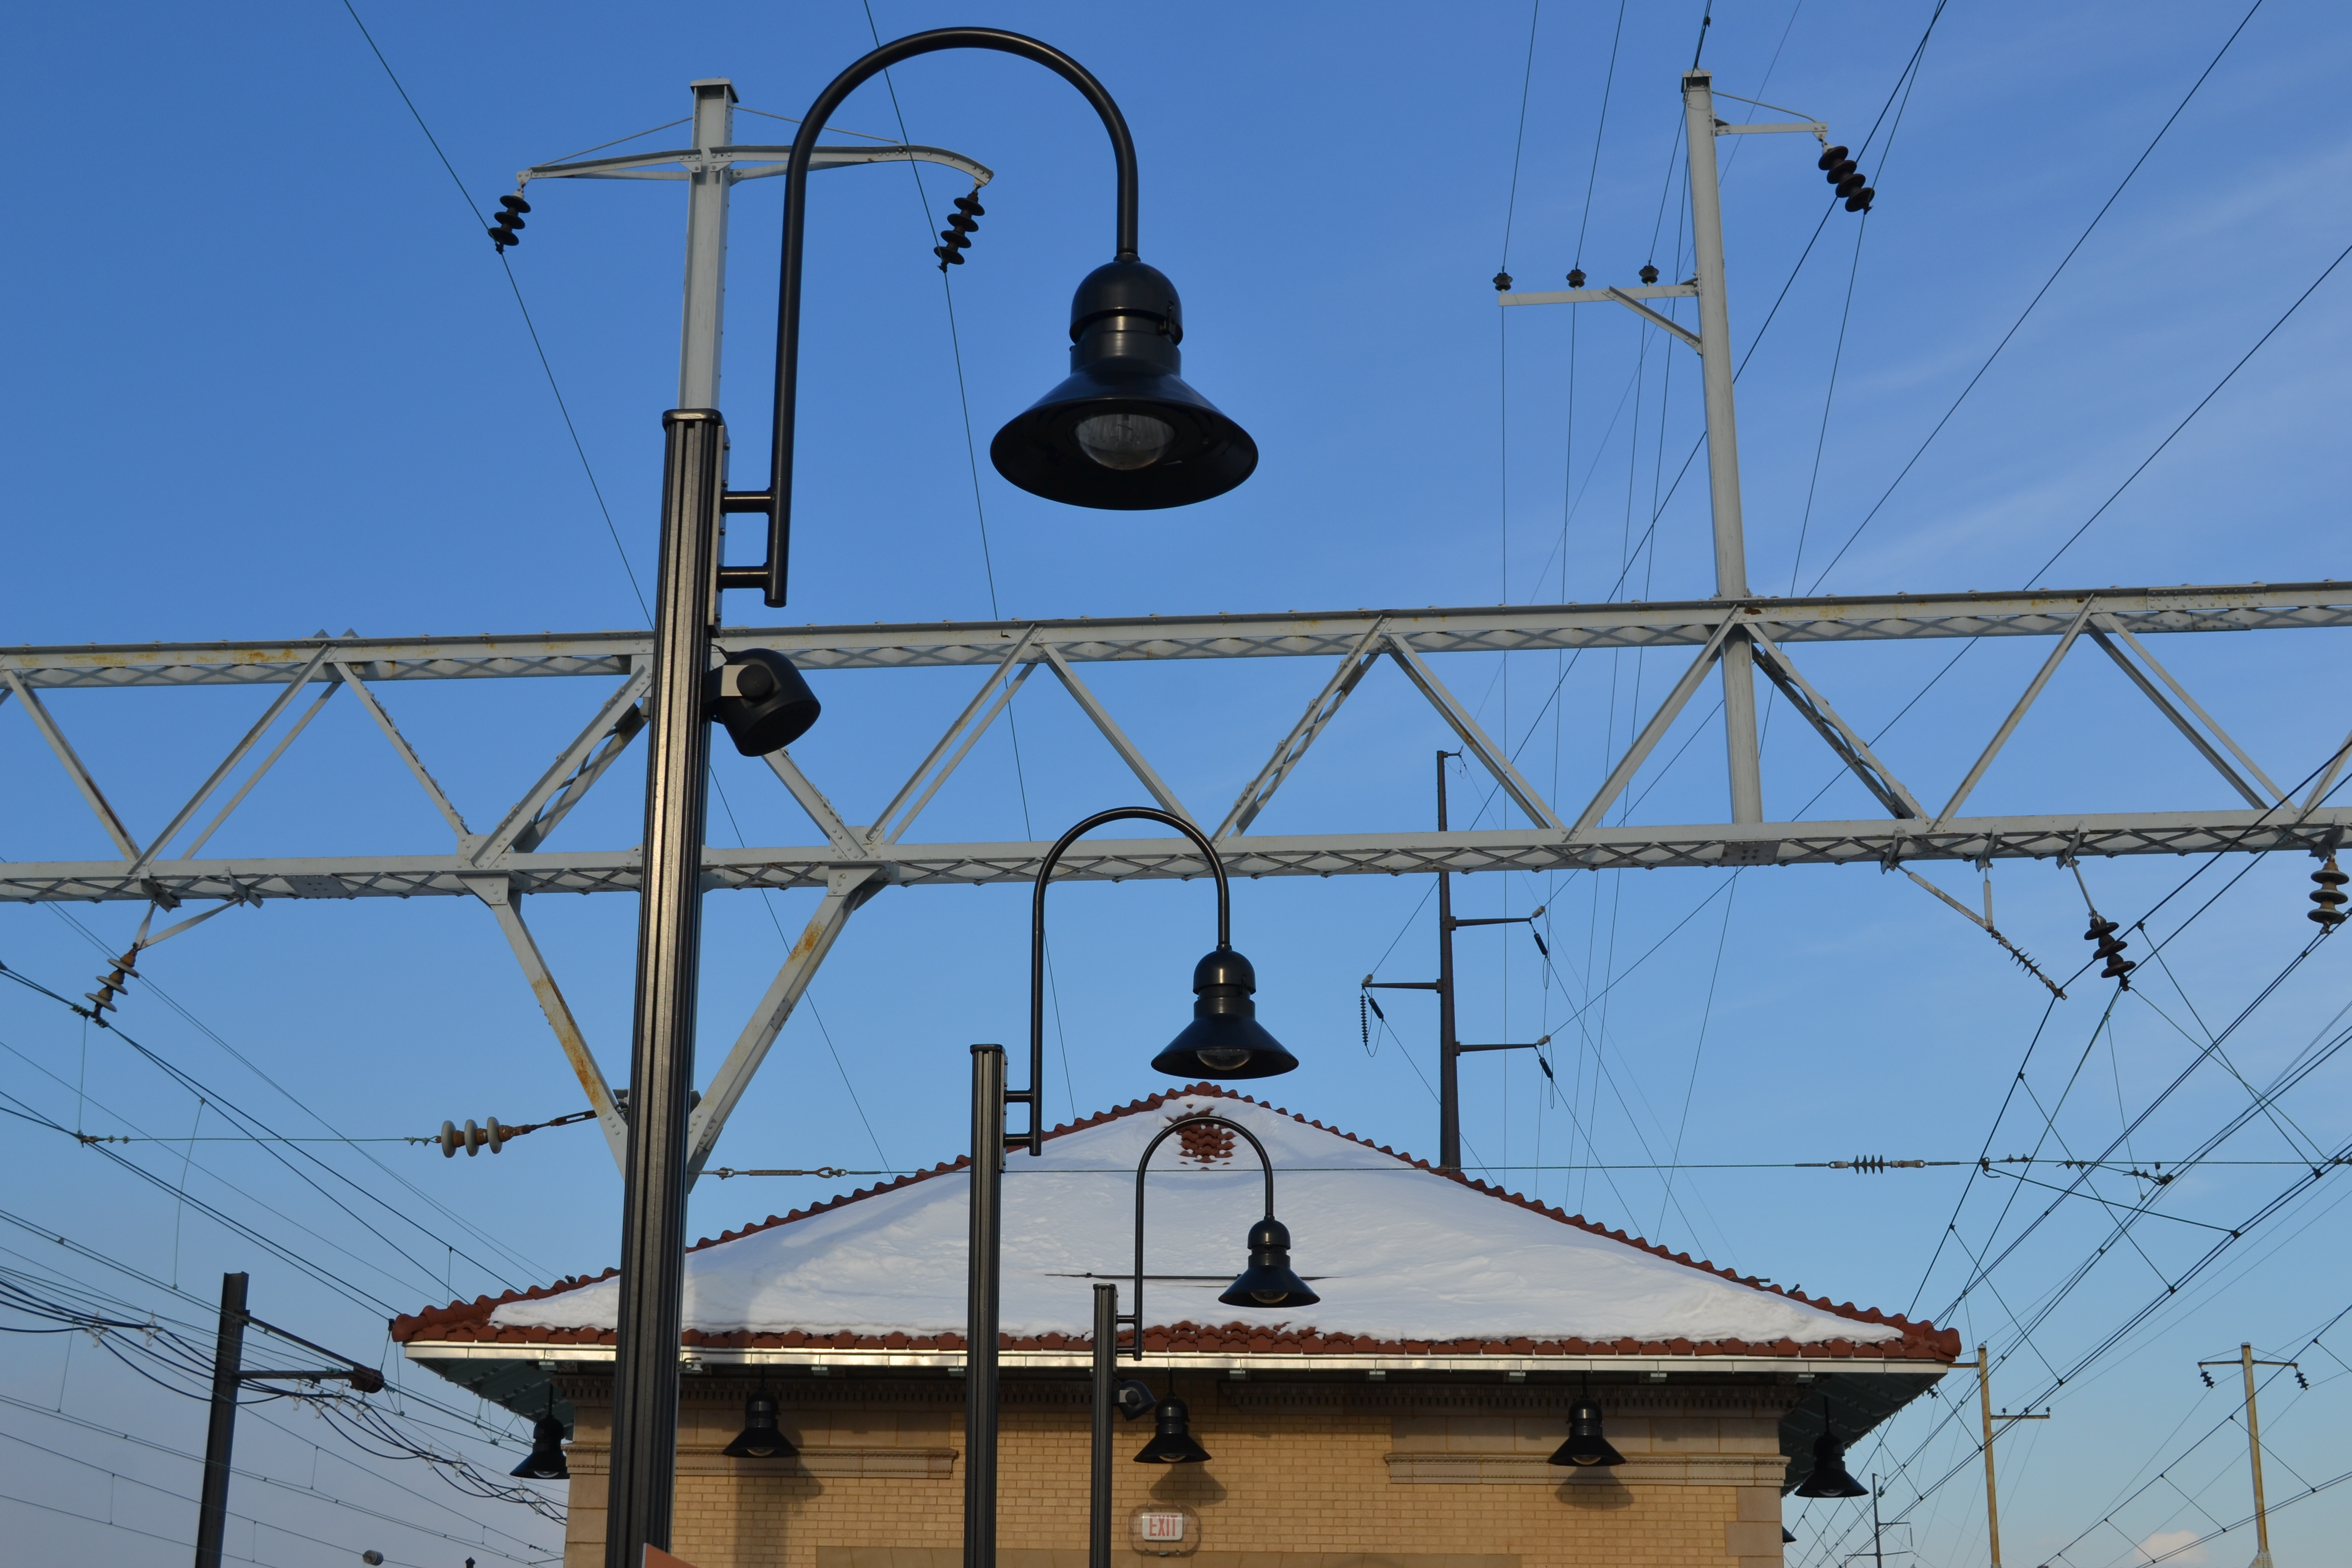 New lighting was installed as part of the platform renovations